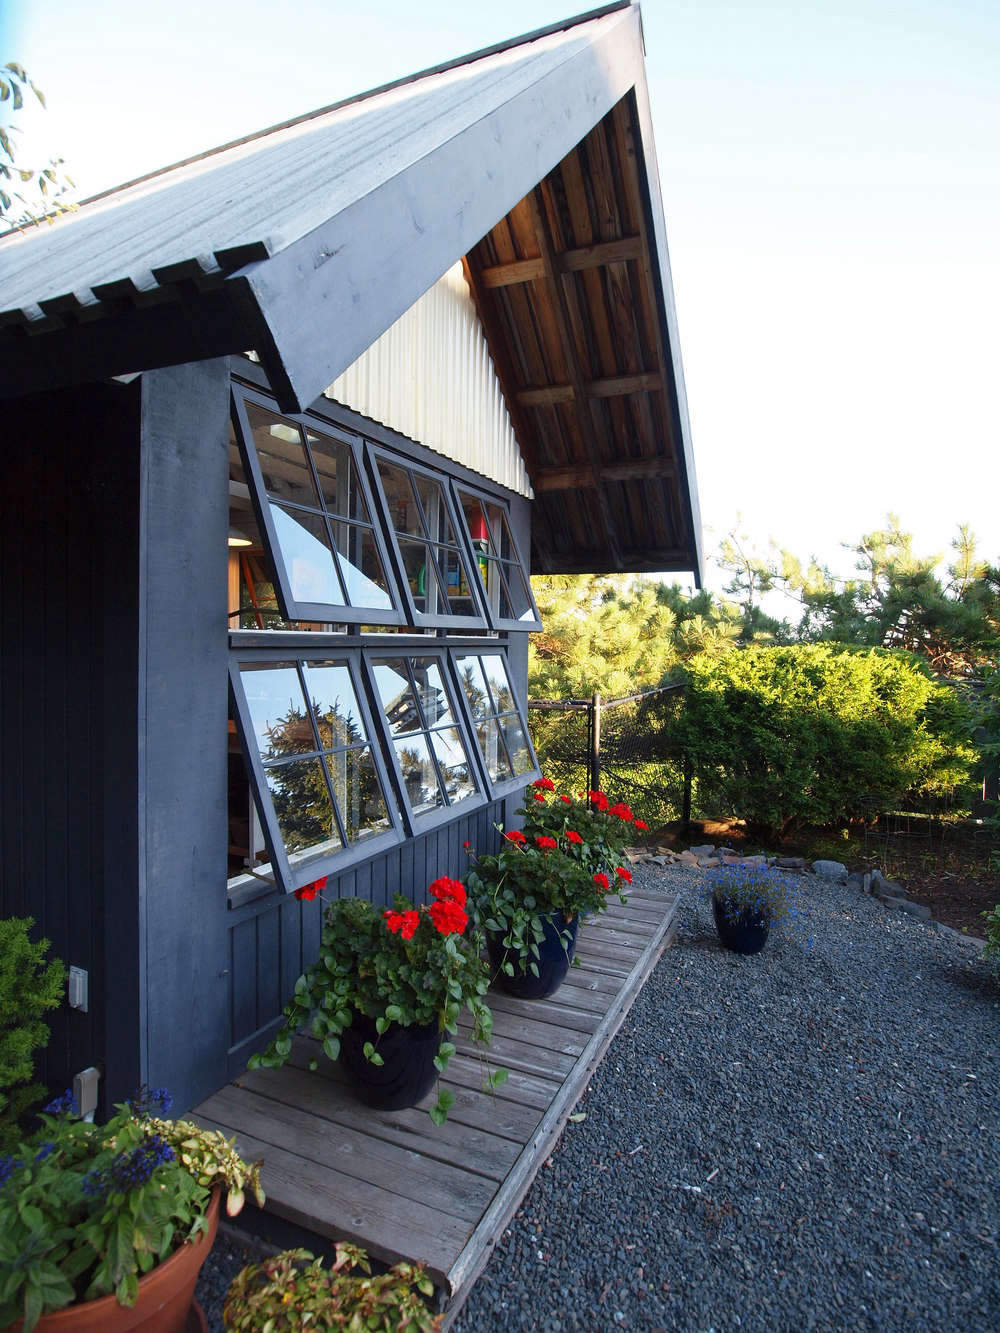 Minneapolis-based Silvercocoon designed this quaint potting shed